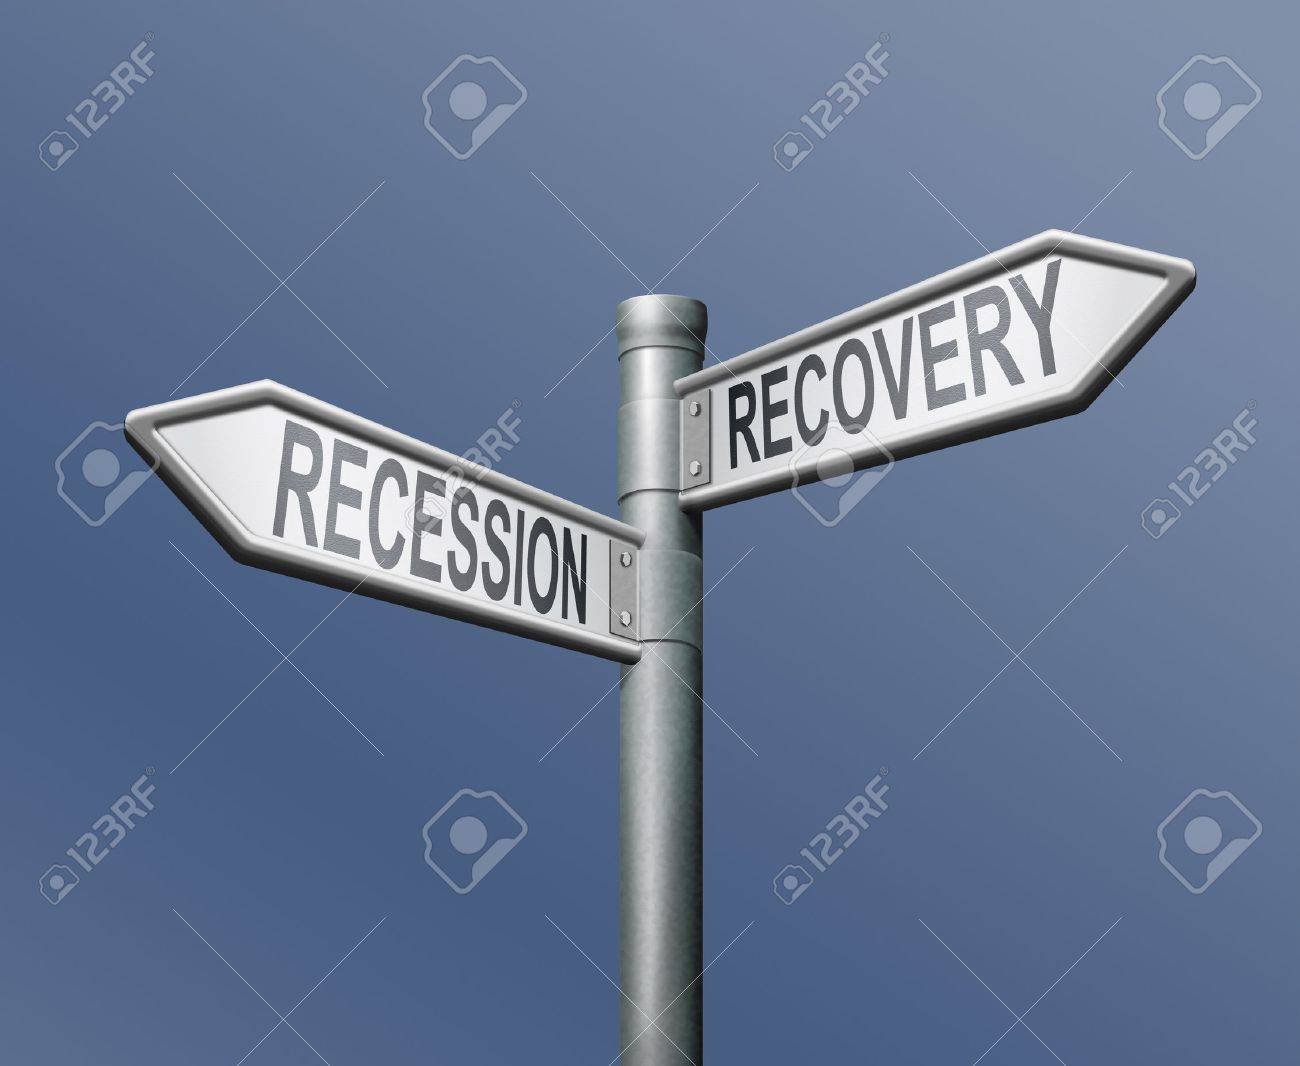 recession recovery road sign arrow on blue background Stock Photo - 8363726